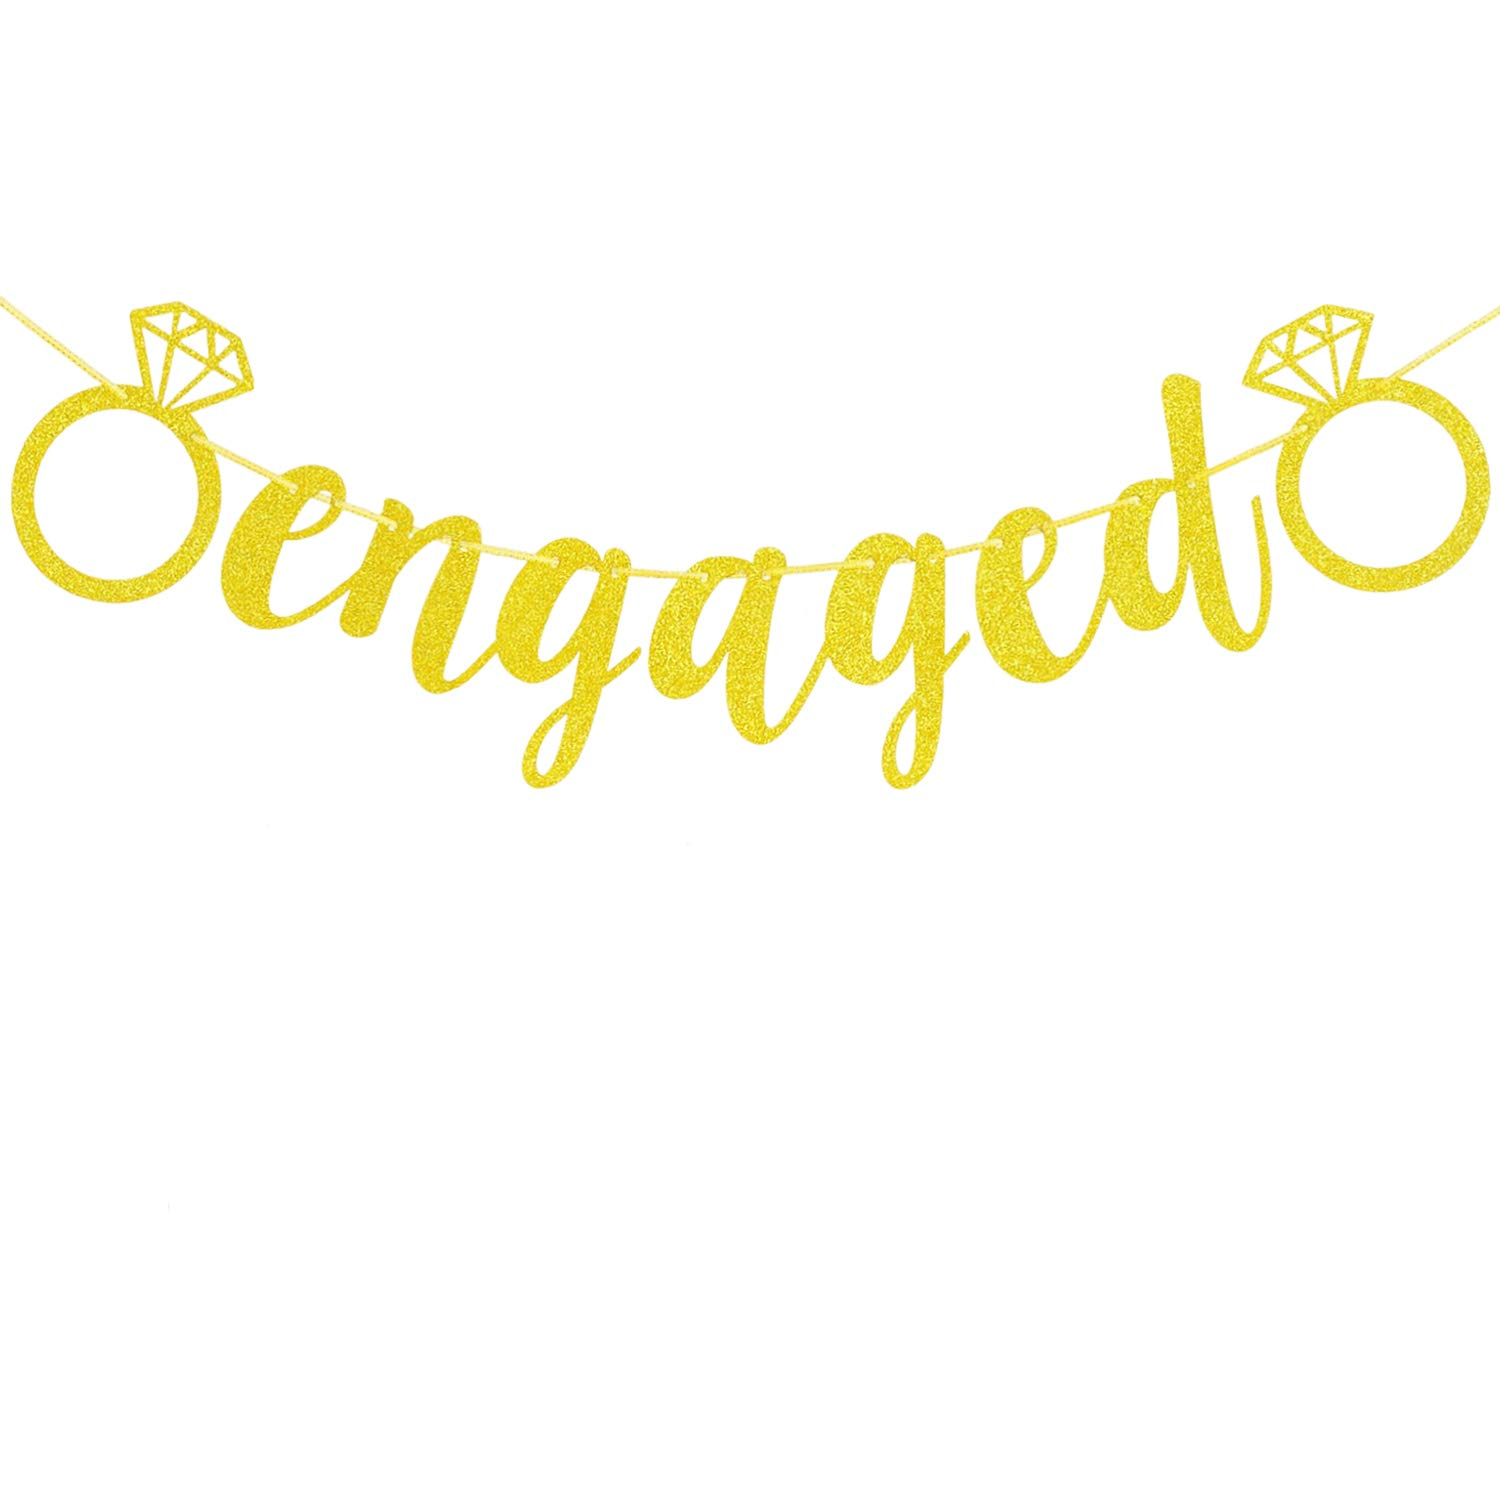 Engagement Party Decorations - Extra-Large Engaged Banner Gold Glittery Letters and Diamond Ring, Engagement, Bridal Shower Party Decorations